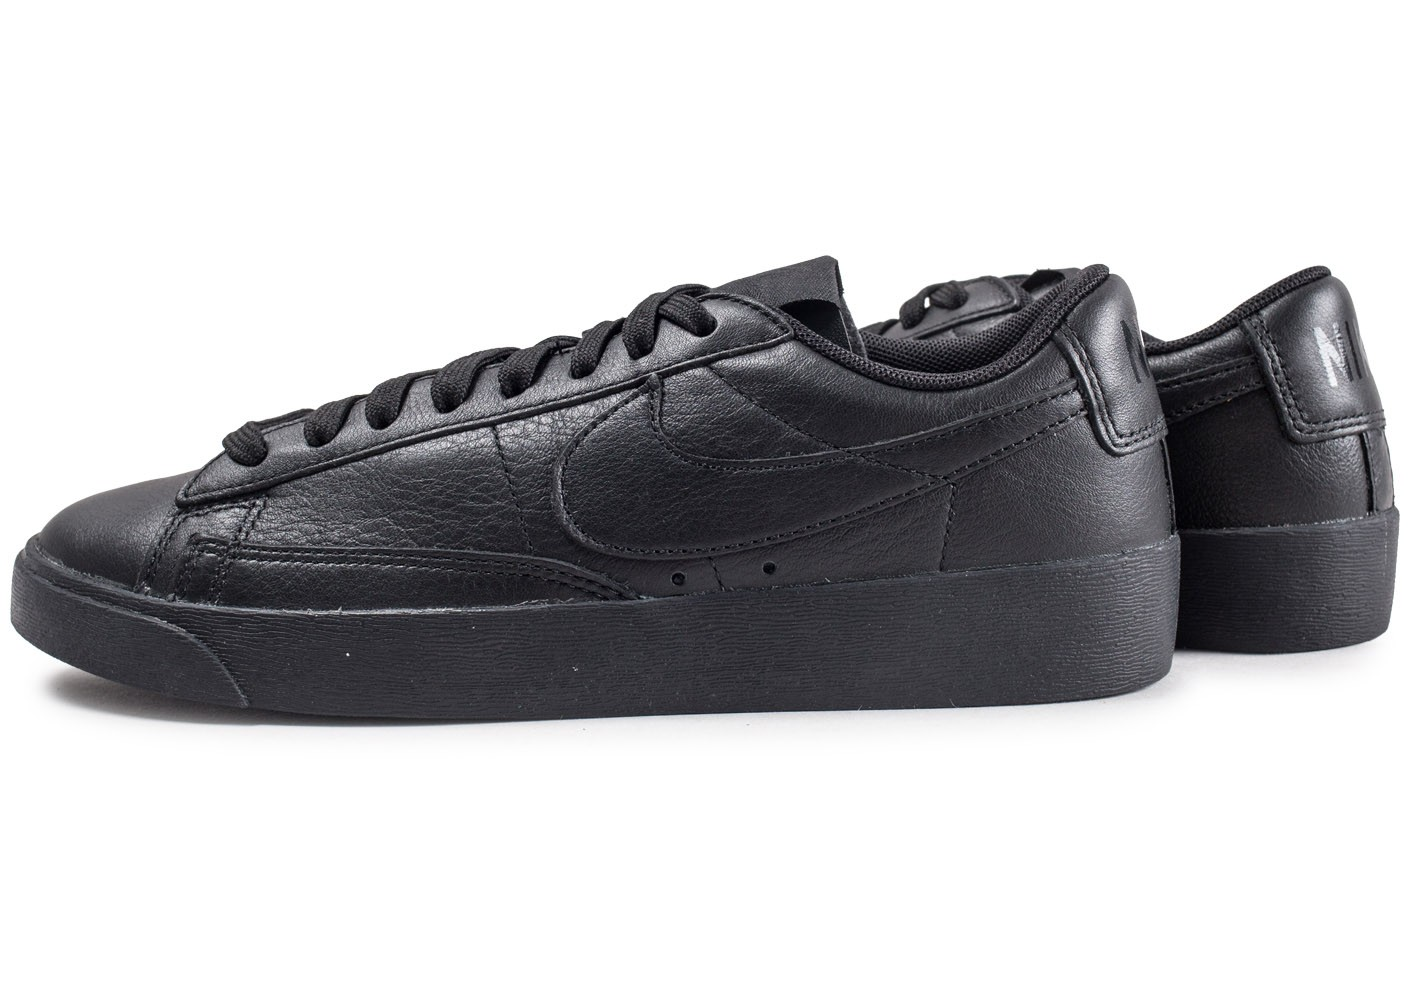 buy good special section look good shoes sale Nike Blazer Low LE noire femme - Chaussures Baskets femme - Chausport